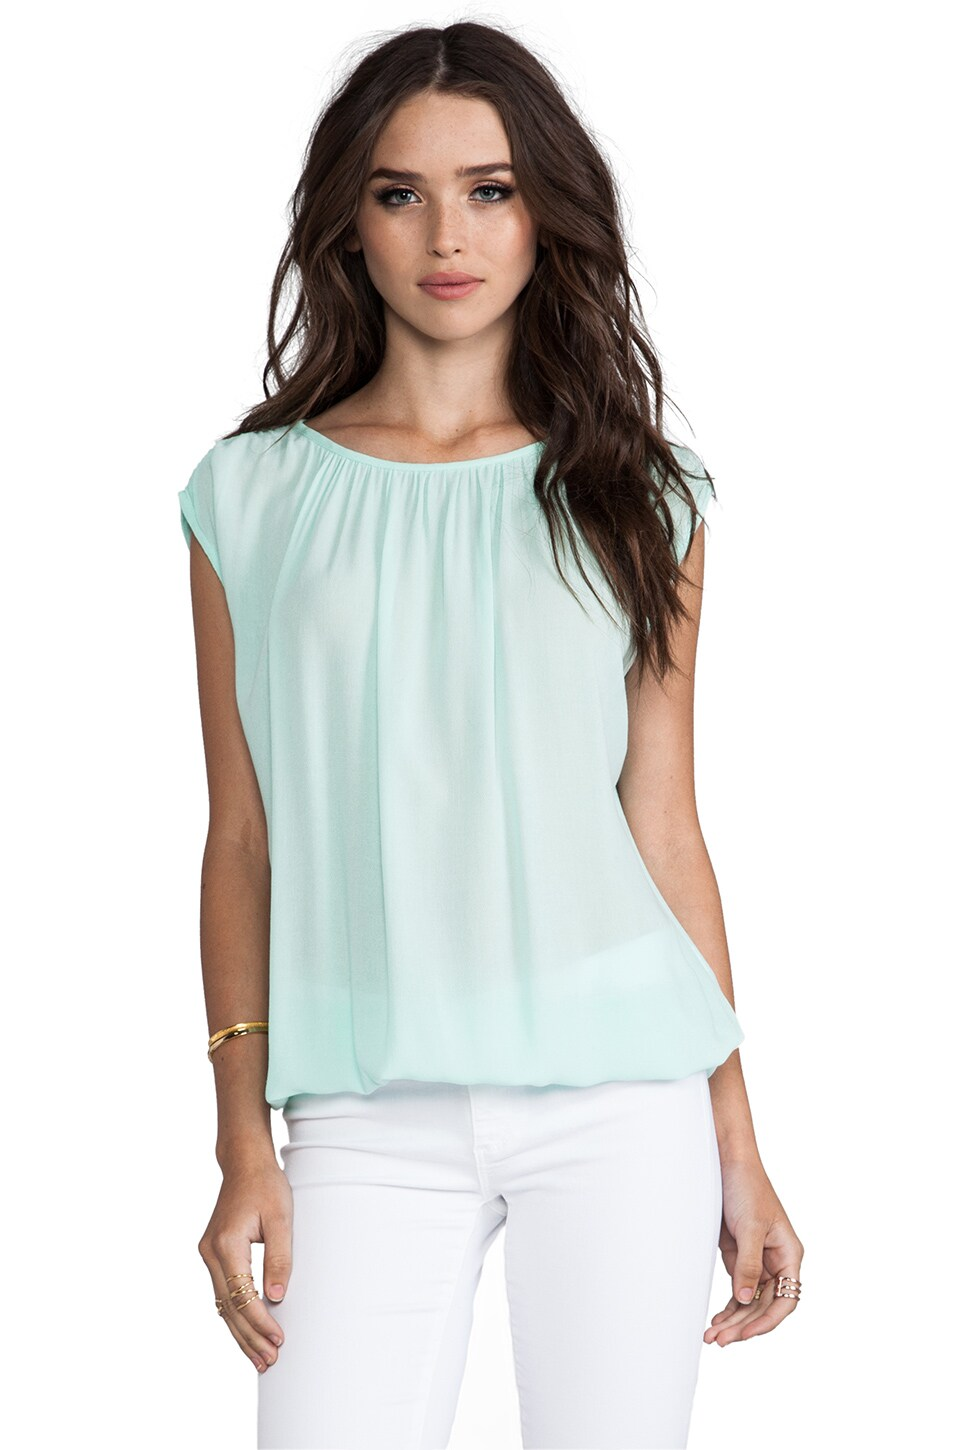 Ella Moss Sleeveless Top in Mint